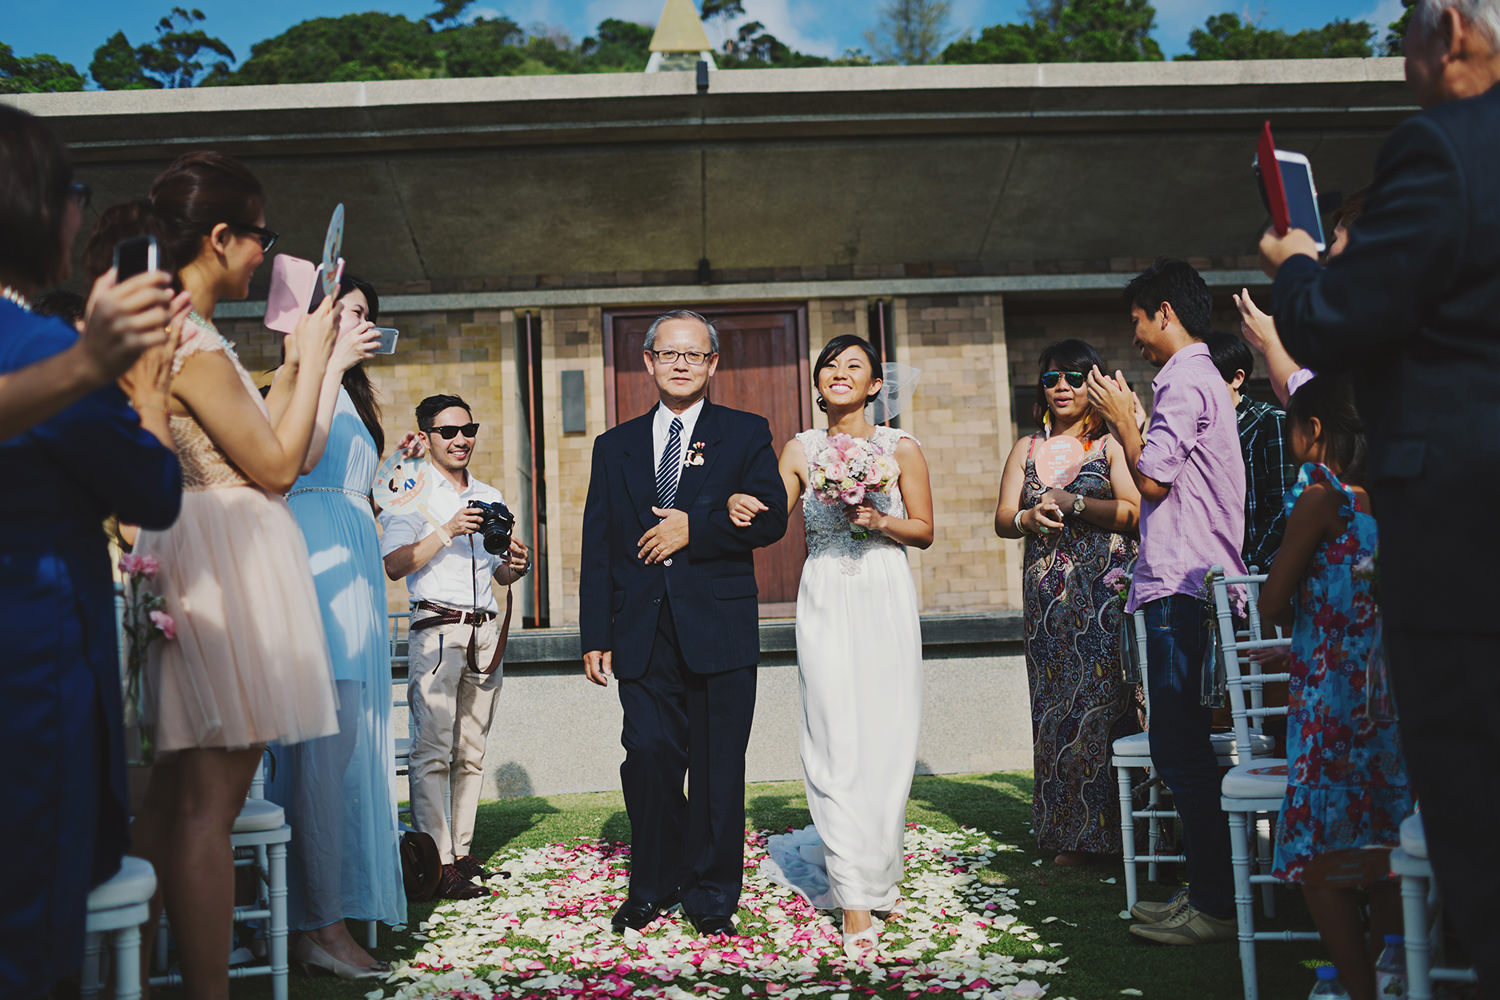 Phuket_Wedding_John_Sher044.JPG